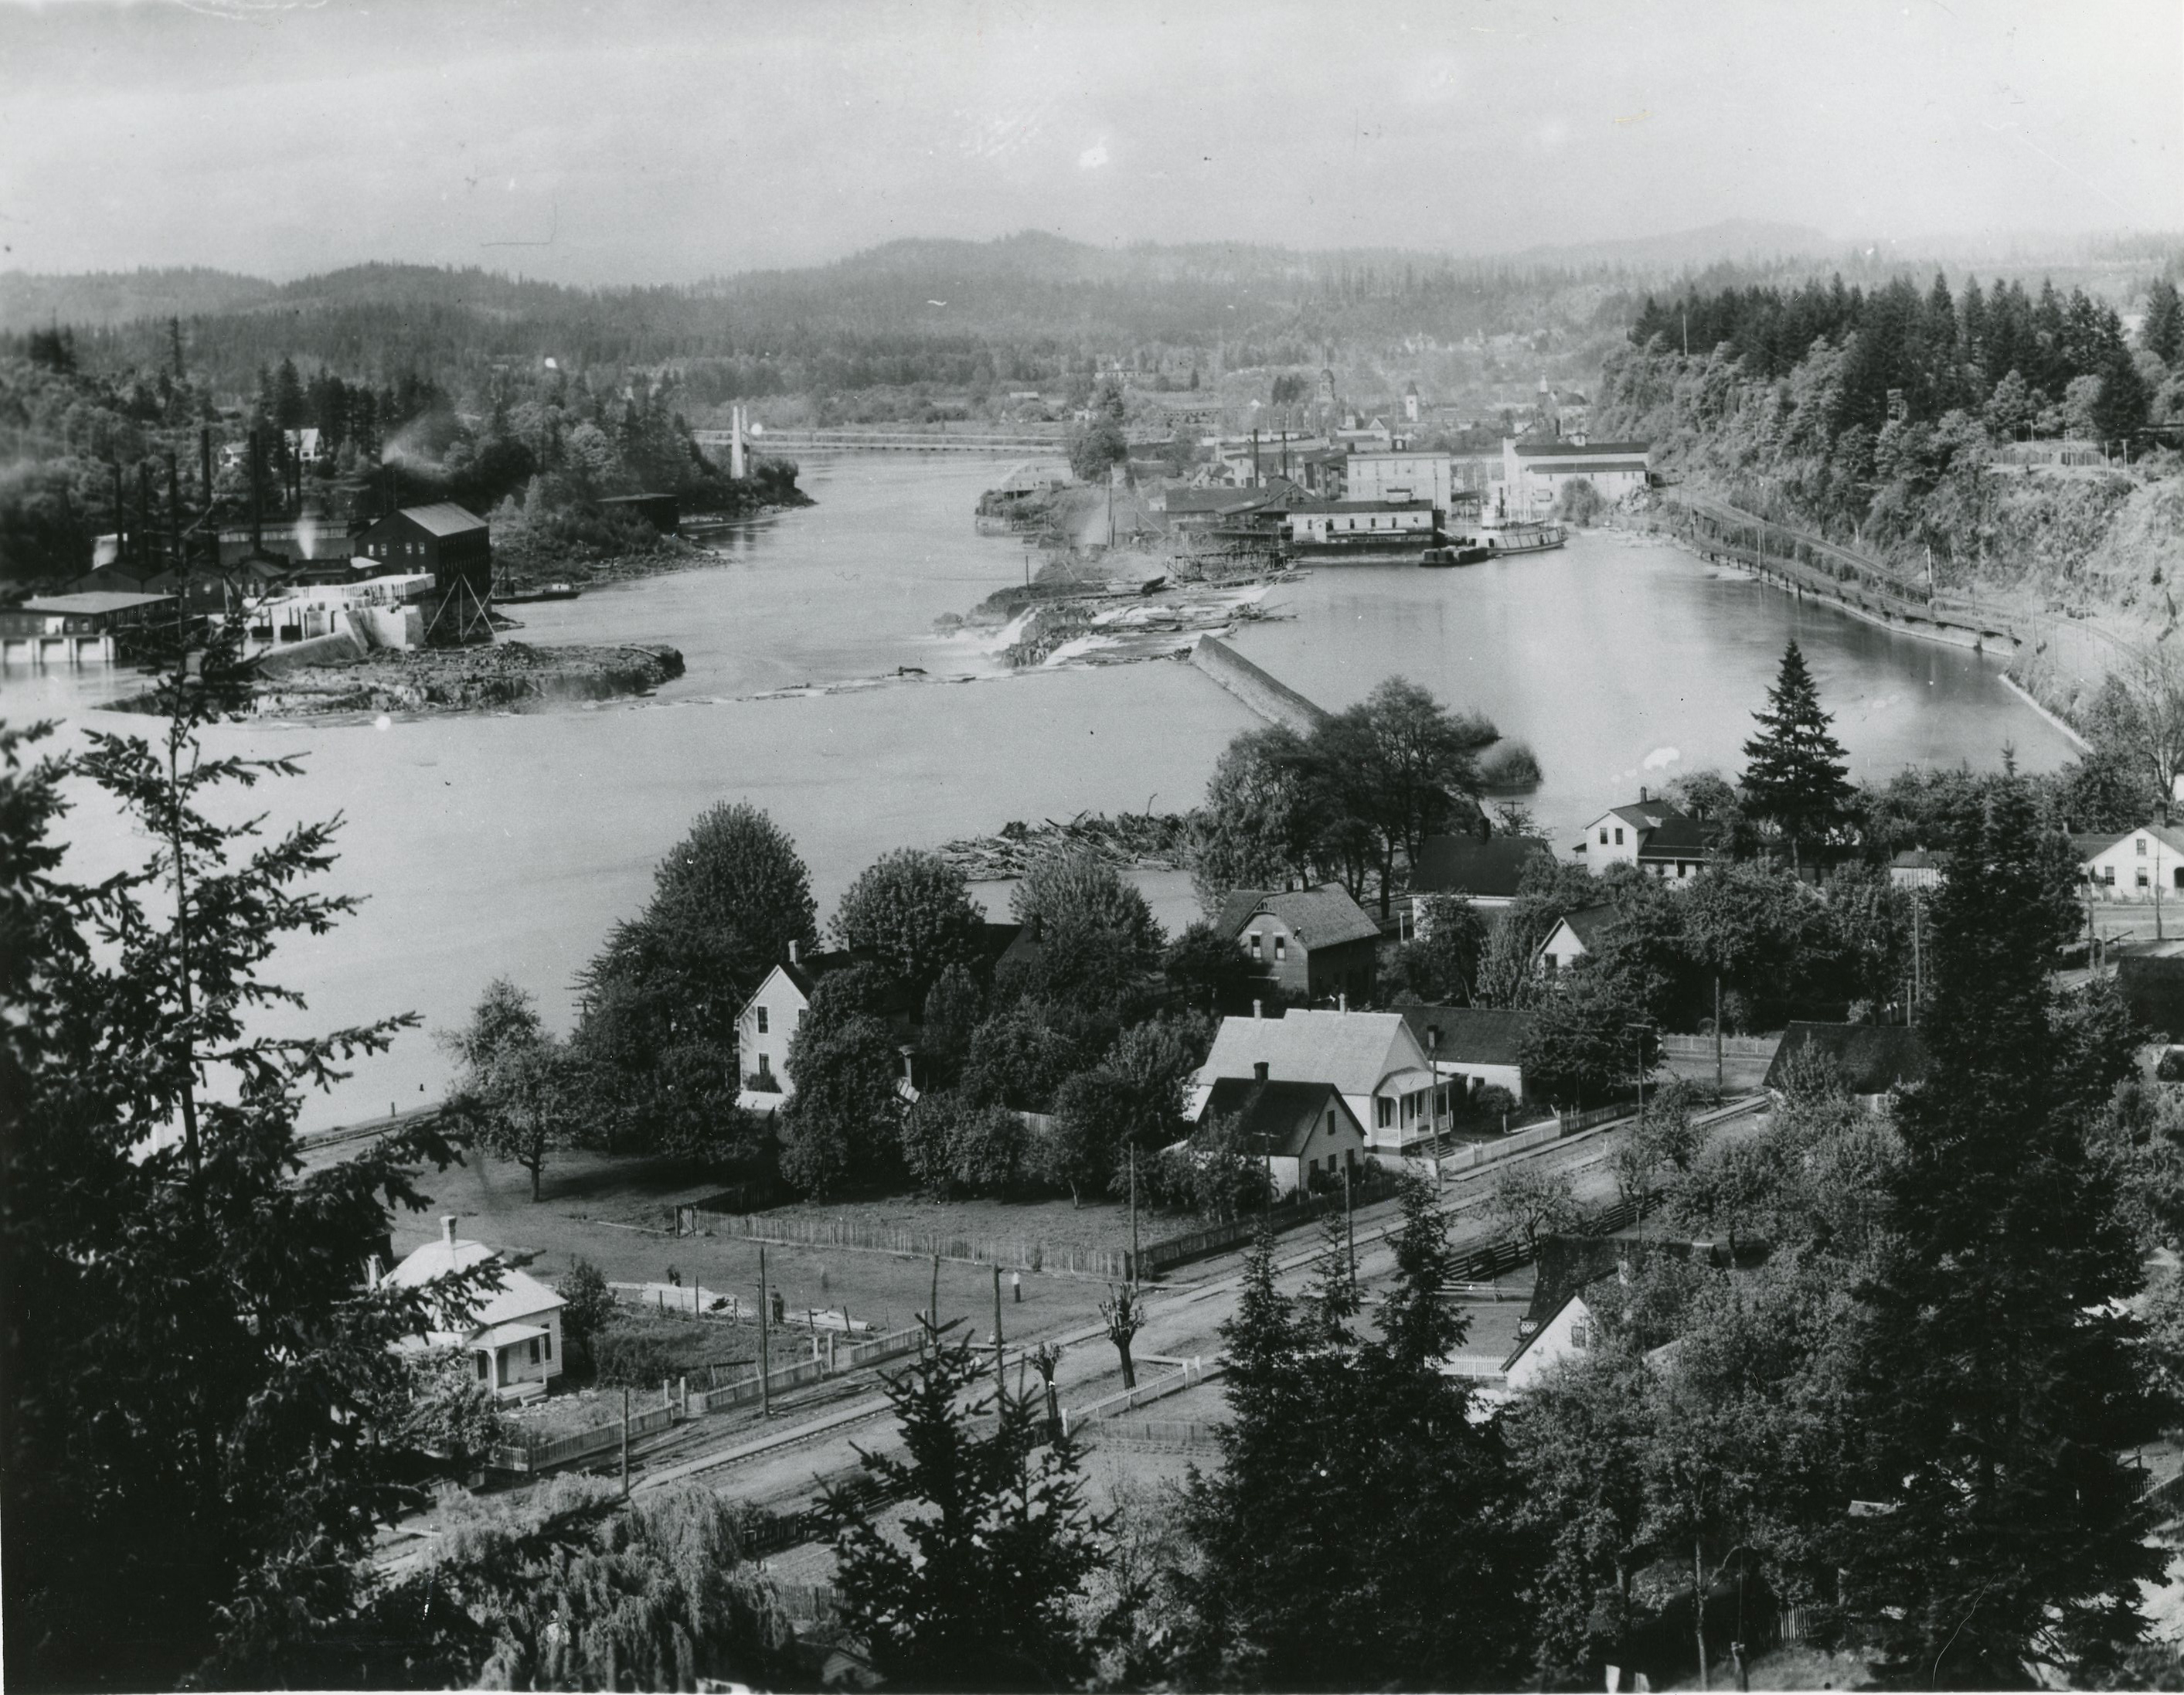 Willamette Falls and Canemah, c. 1900